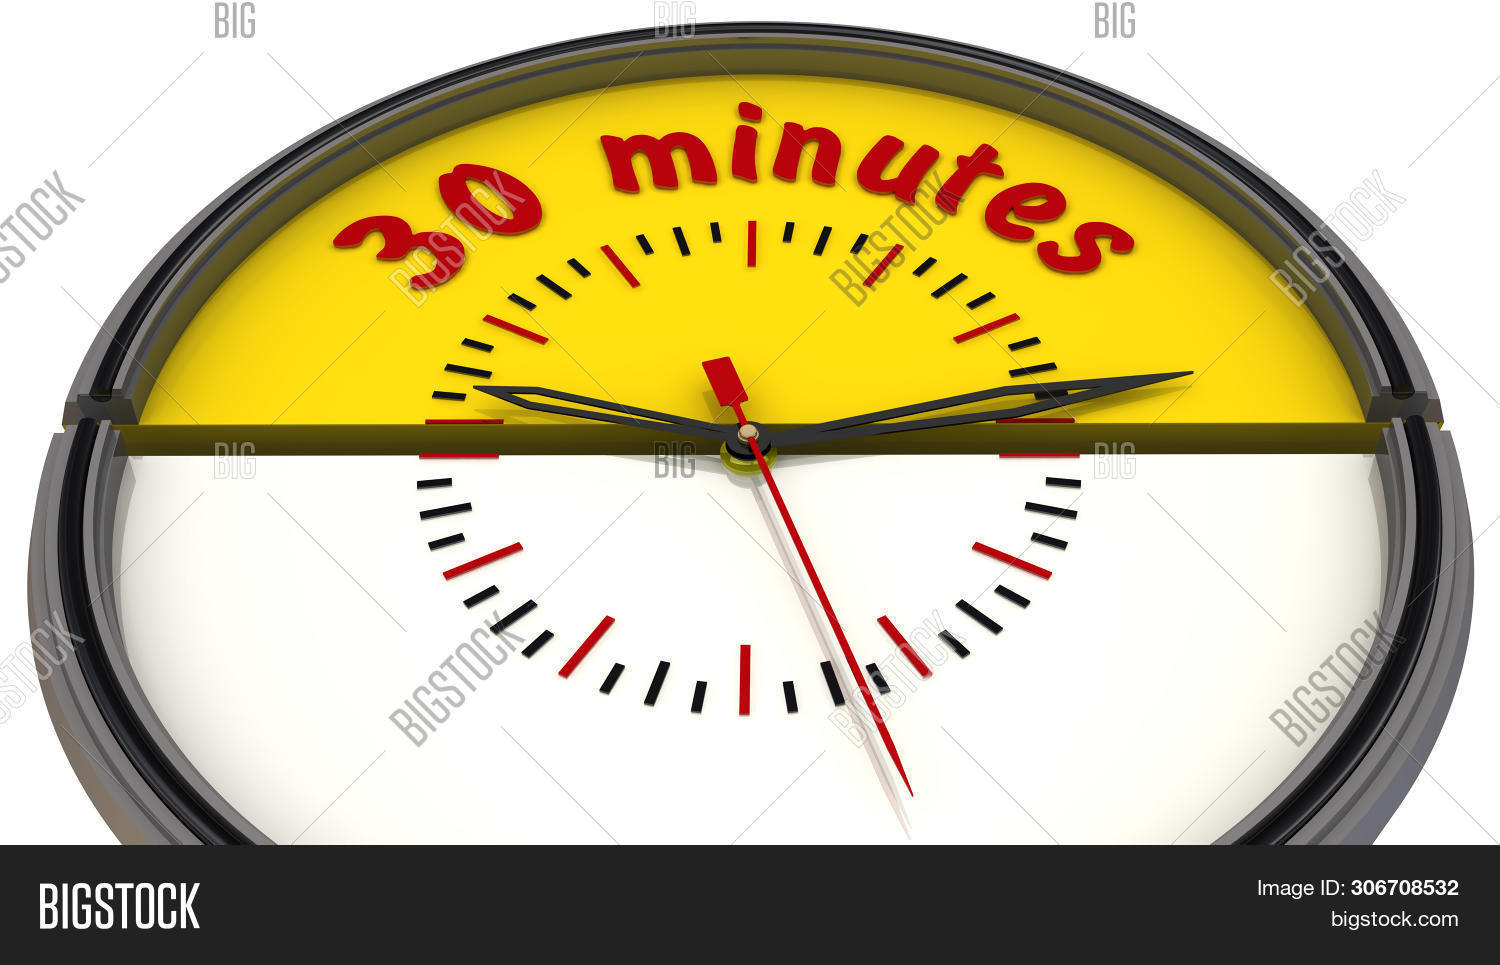 Thirty Minutes On The Clock. The Time Interval Of Thirty Minutes On The Analog Clock. Isolated. 3d I